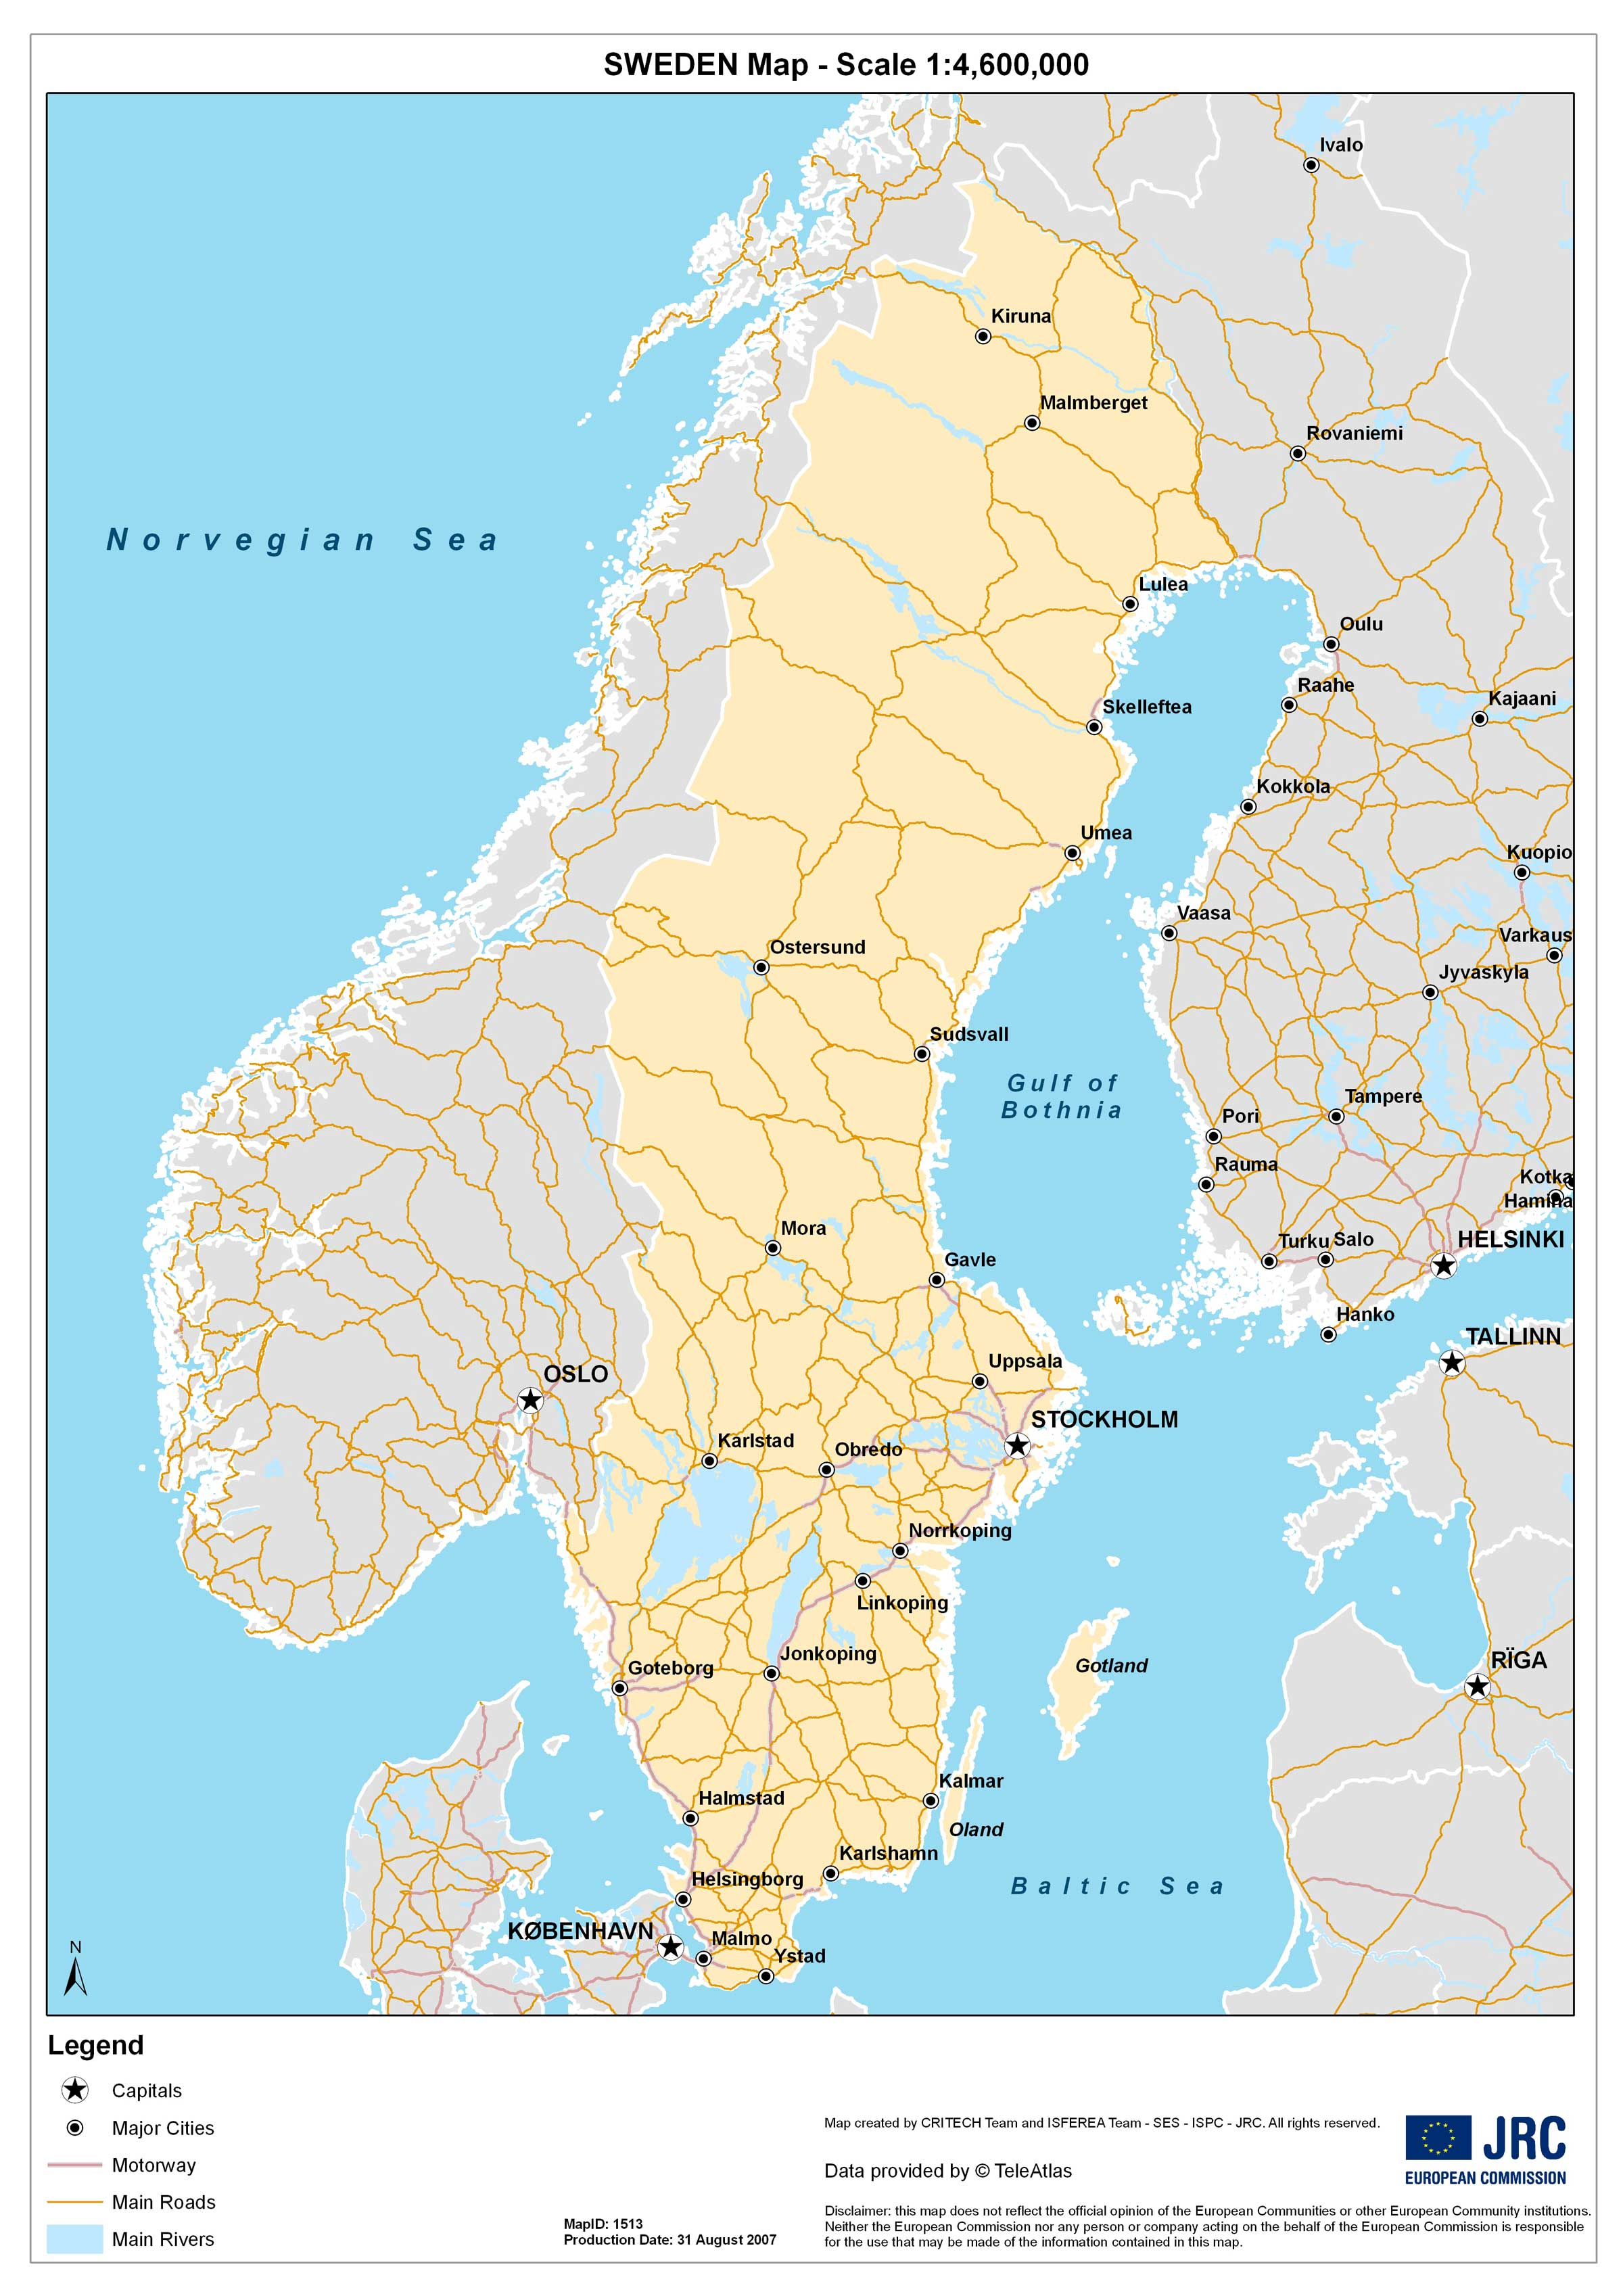 Outline Map Of Sweden Mapsofnet - Sweden big map